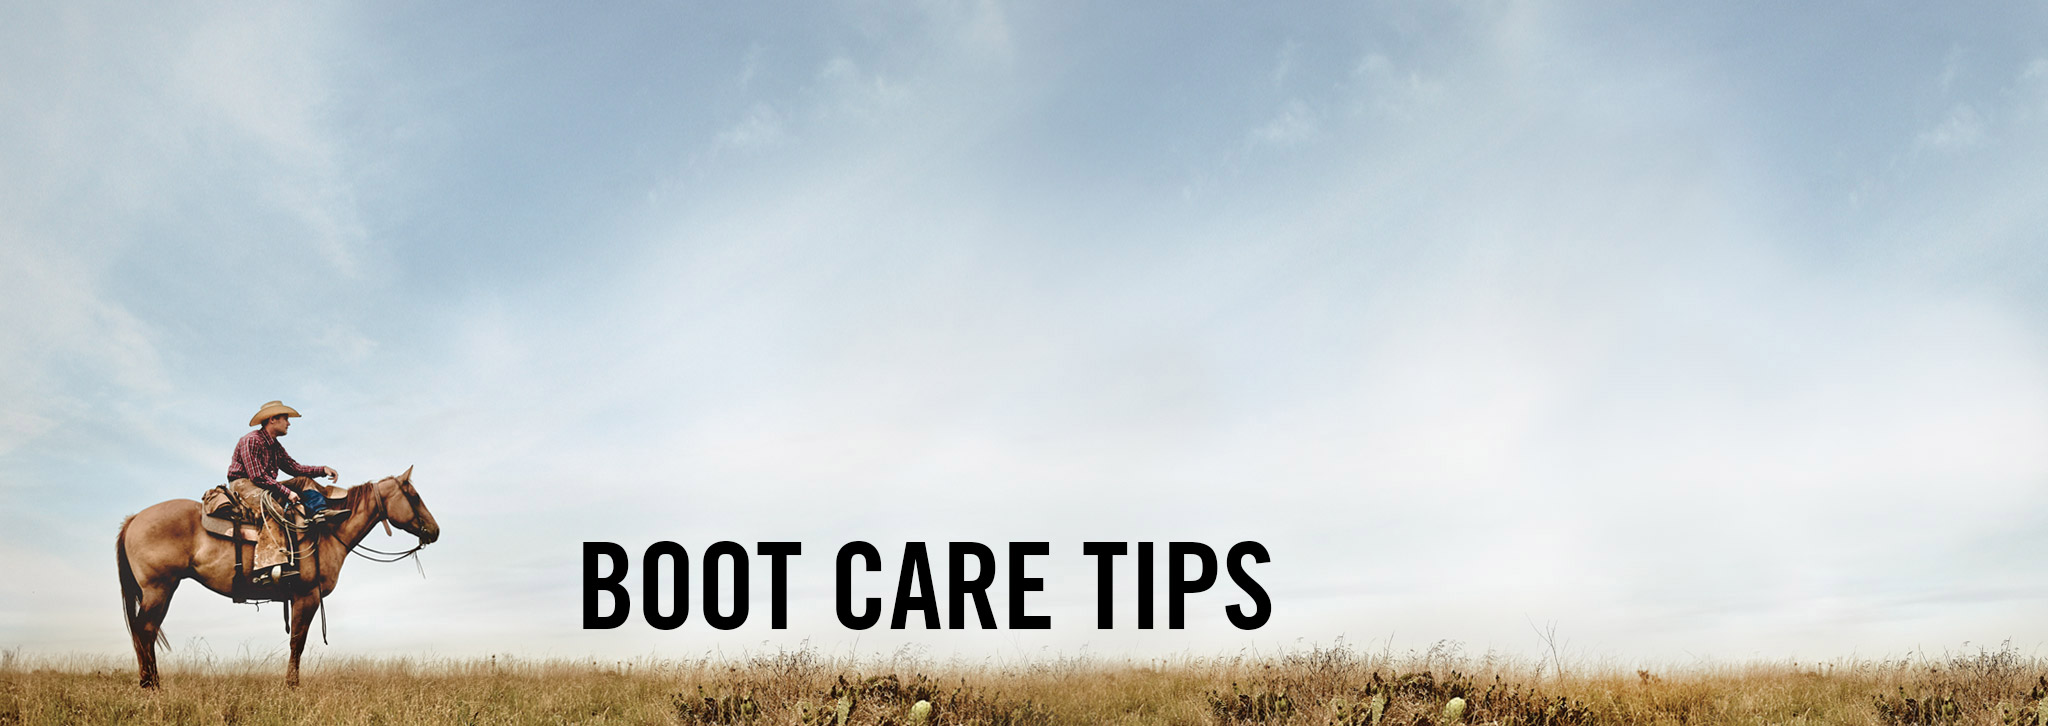 JBCCARE - Boot Care Tips